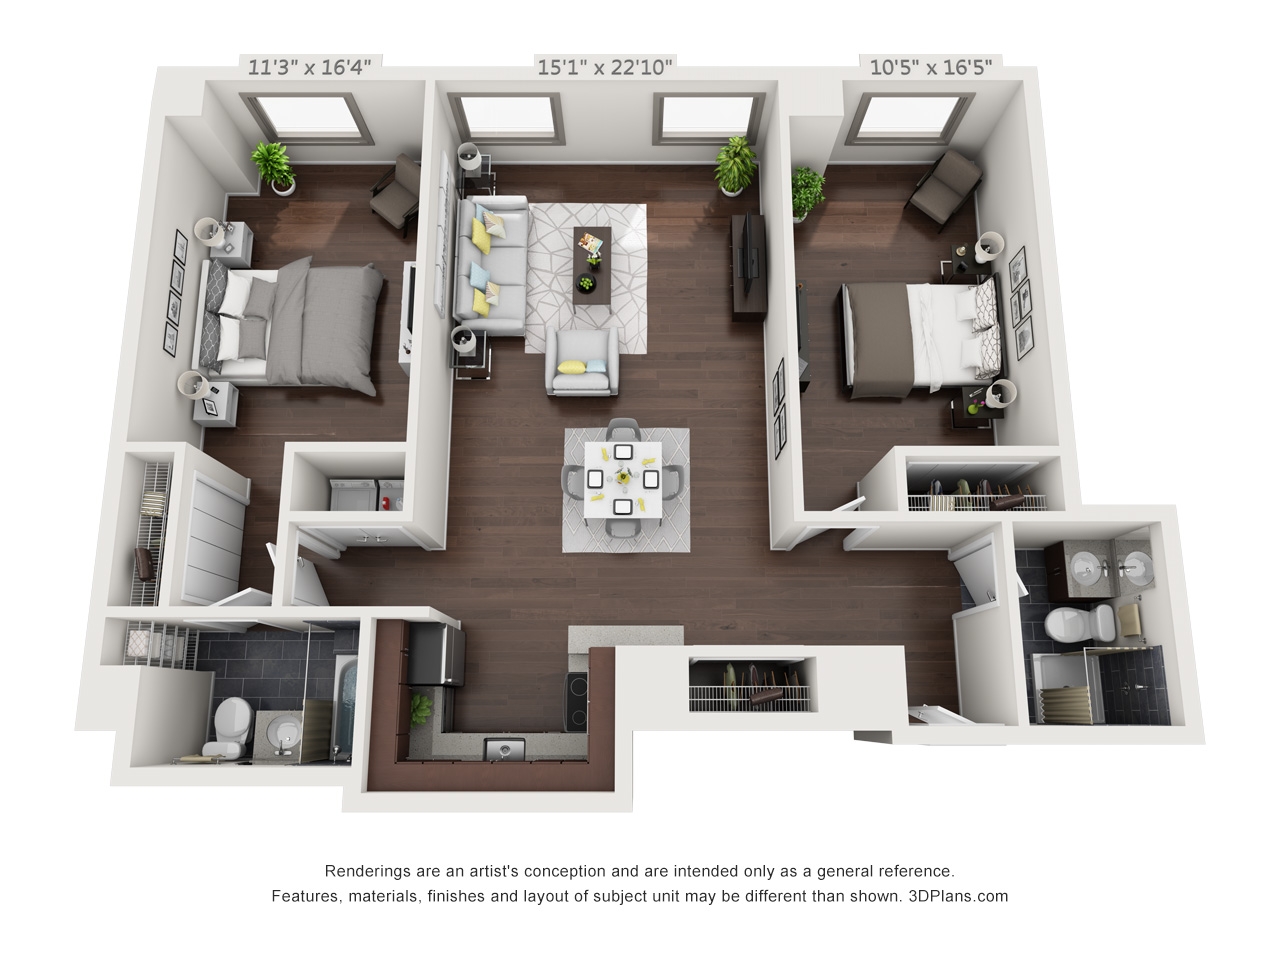 luxury philadelphia apartments - 2 bedroom